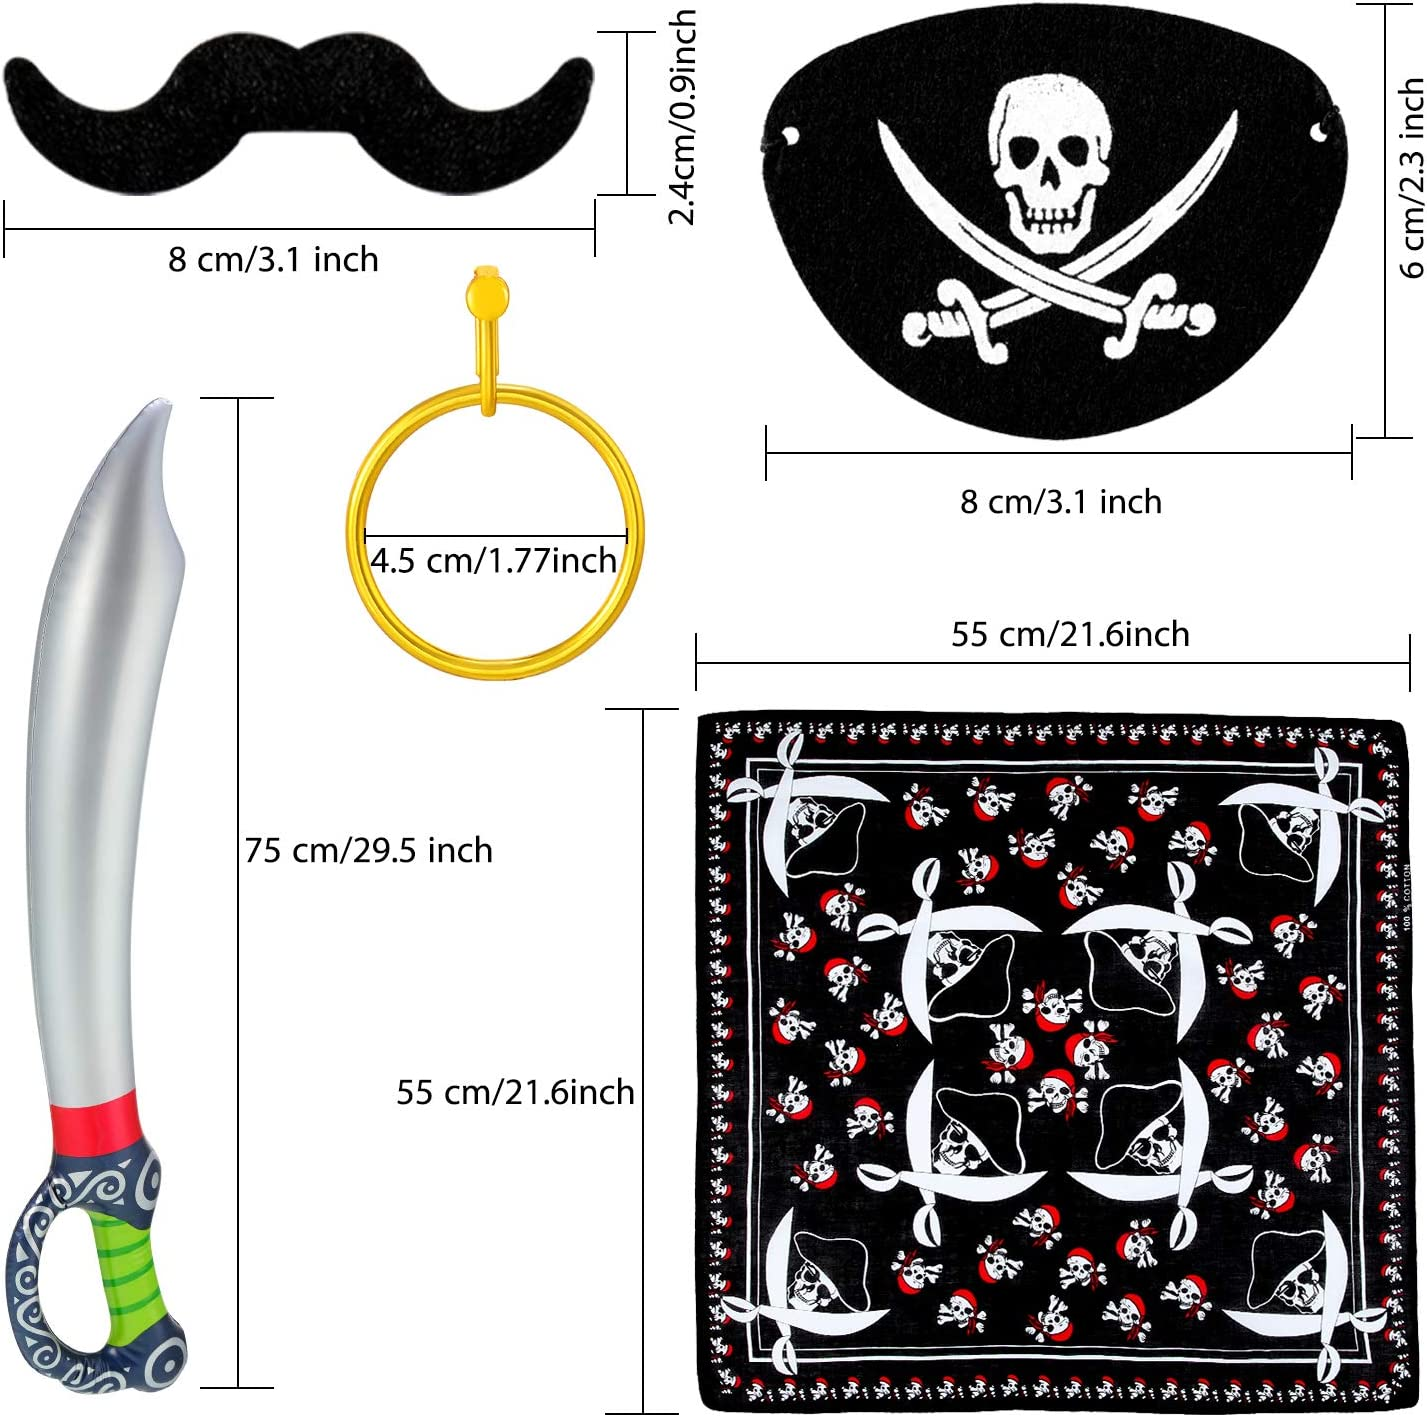 Pirate Captain Eye Patches Pirate Fake Mustache and Gold Earring for Halloween Pirate Costume Prop 44 Pieces Pirate Themed Party Supplies Pirate Bandana Pirate Inflatable Swords